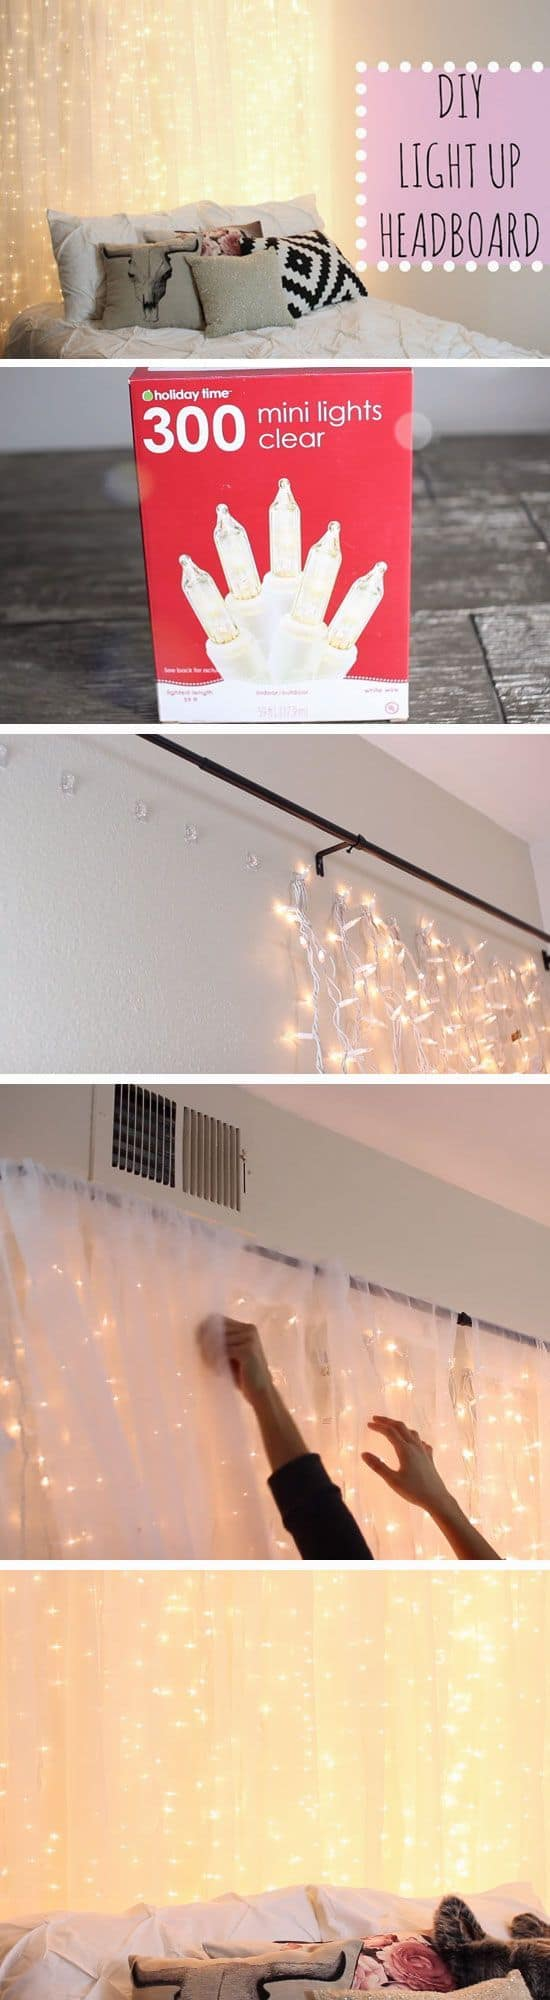 Diy light up headboard